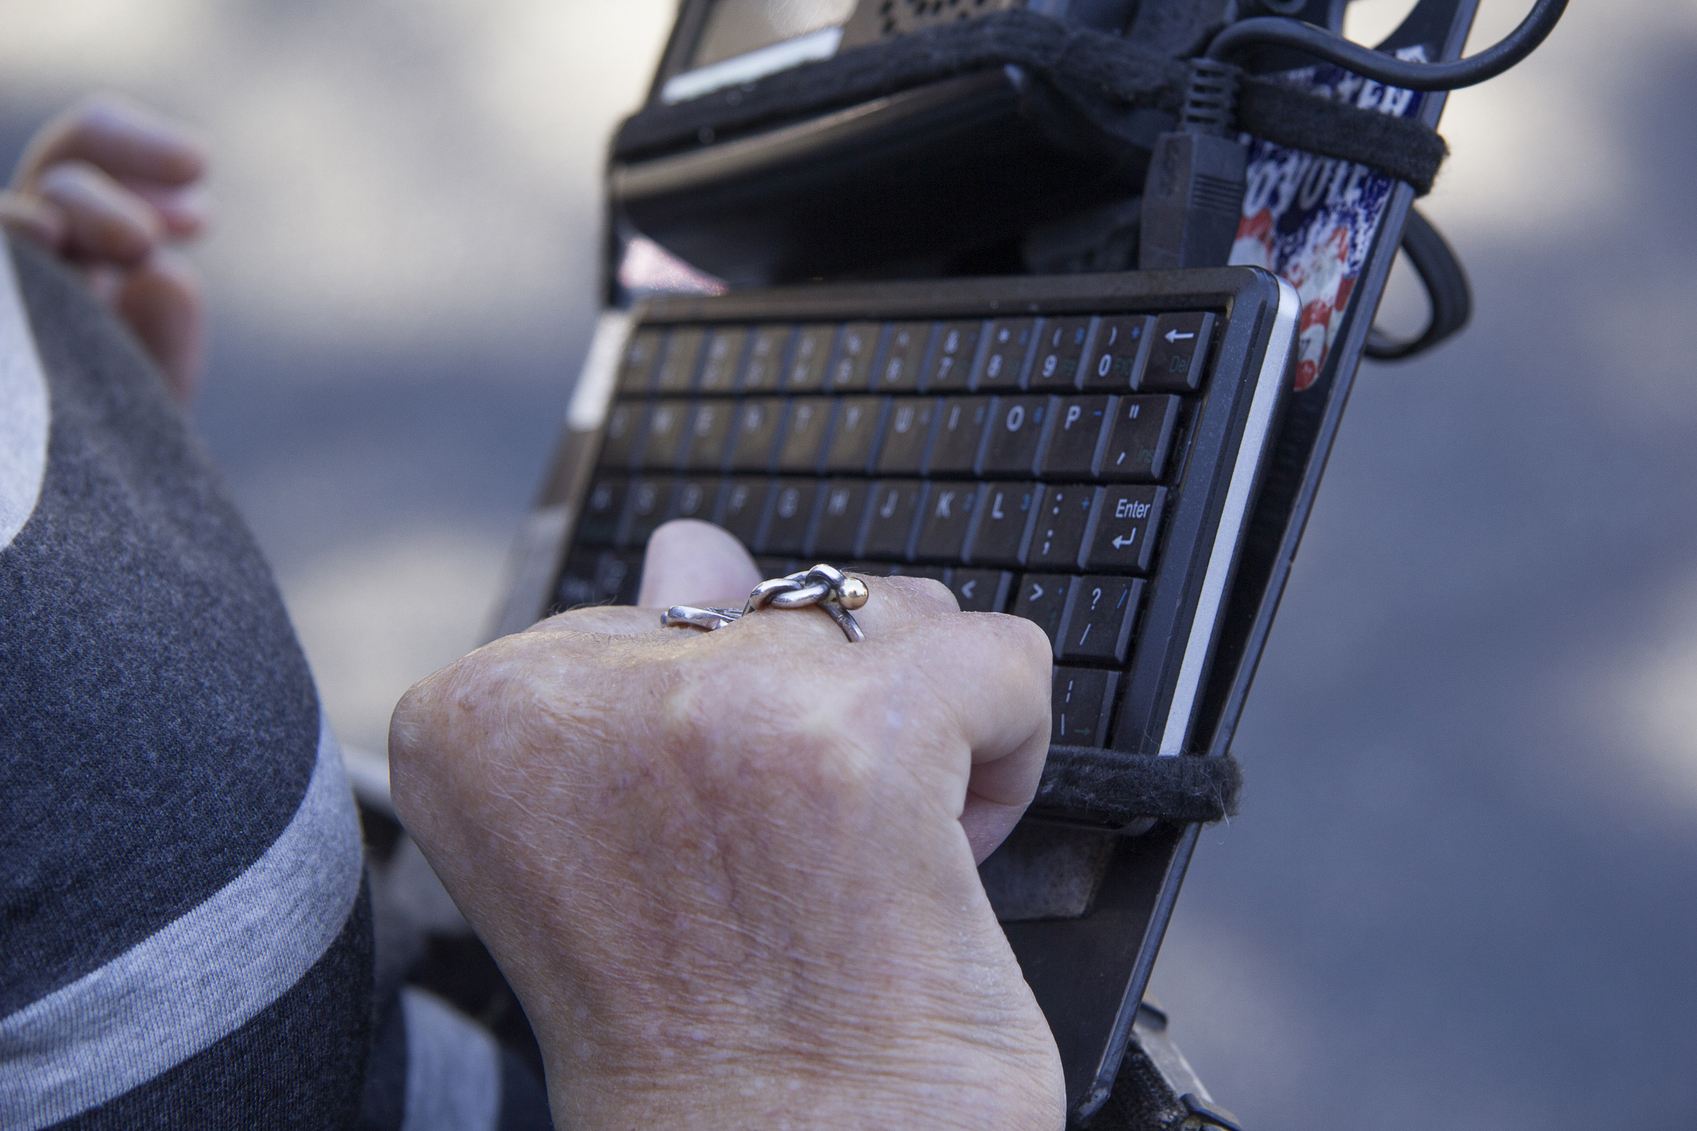 Photo of a hand with folded fingers in front of a keyboard attached to a wheelchair.